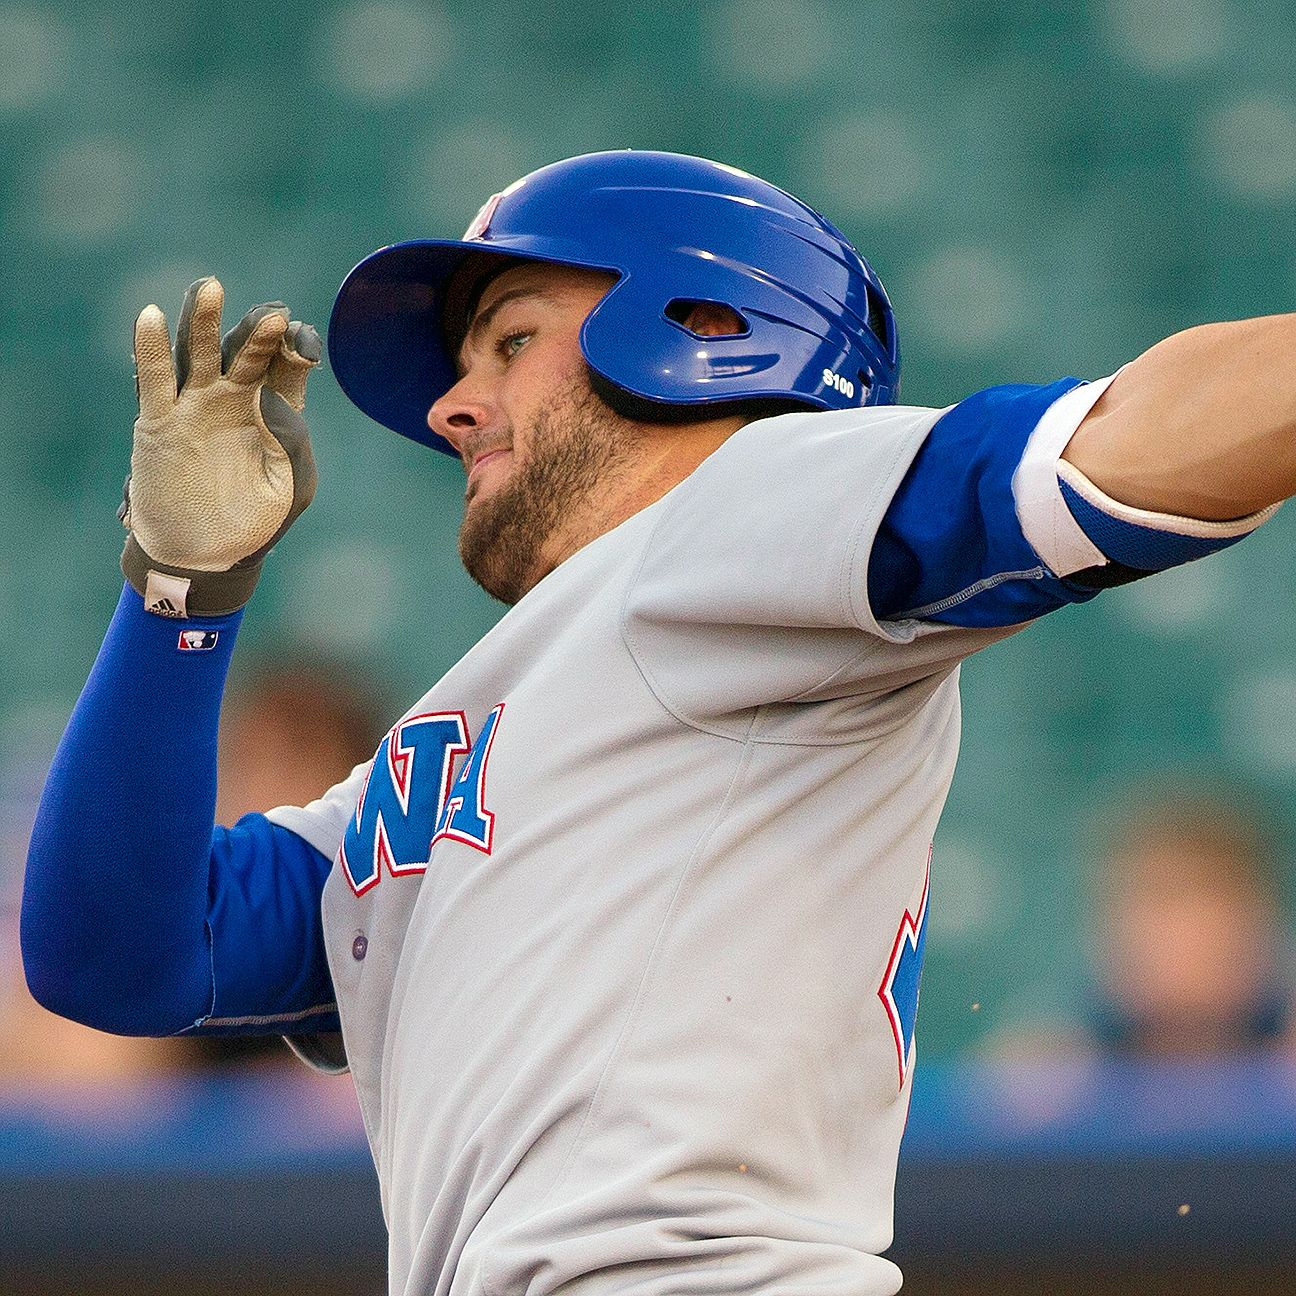 Chicago Cubs to call up Kris Bryant